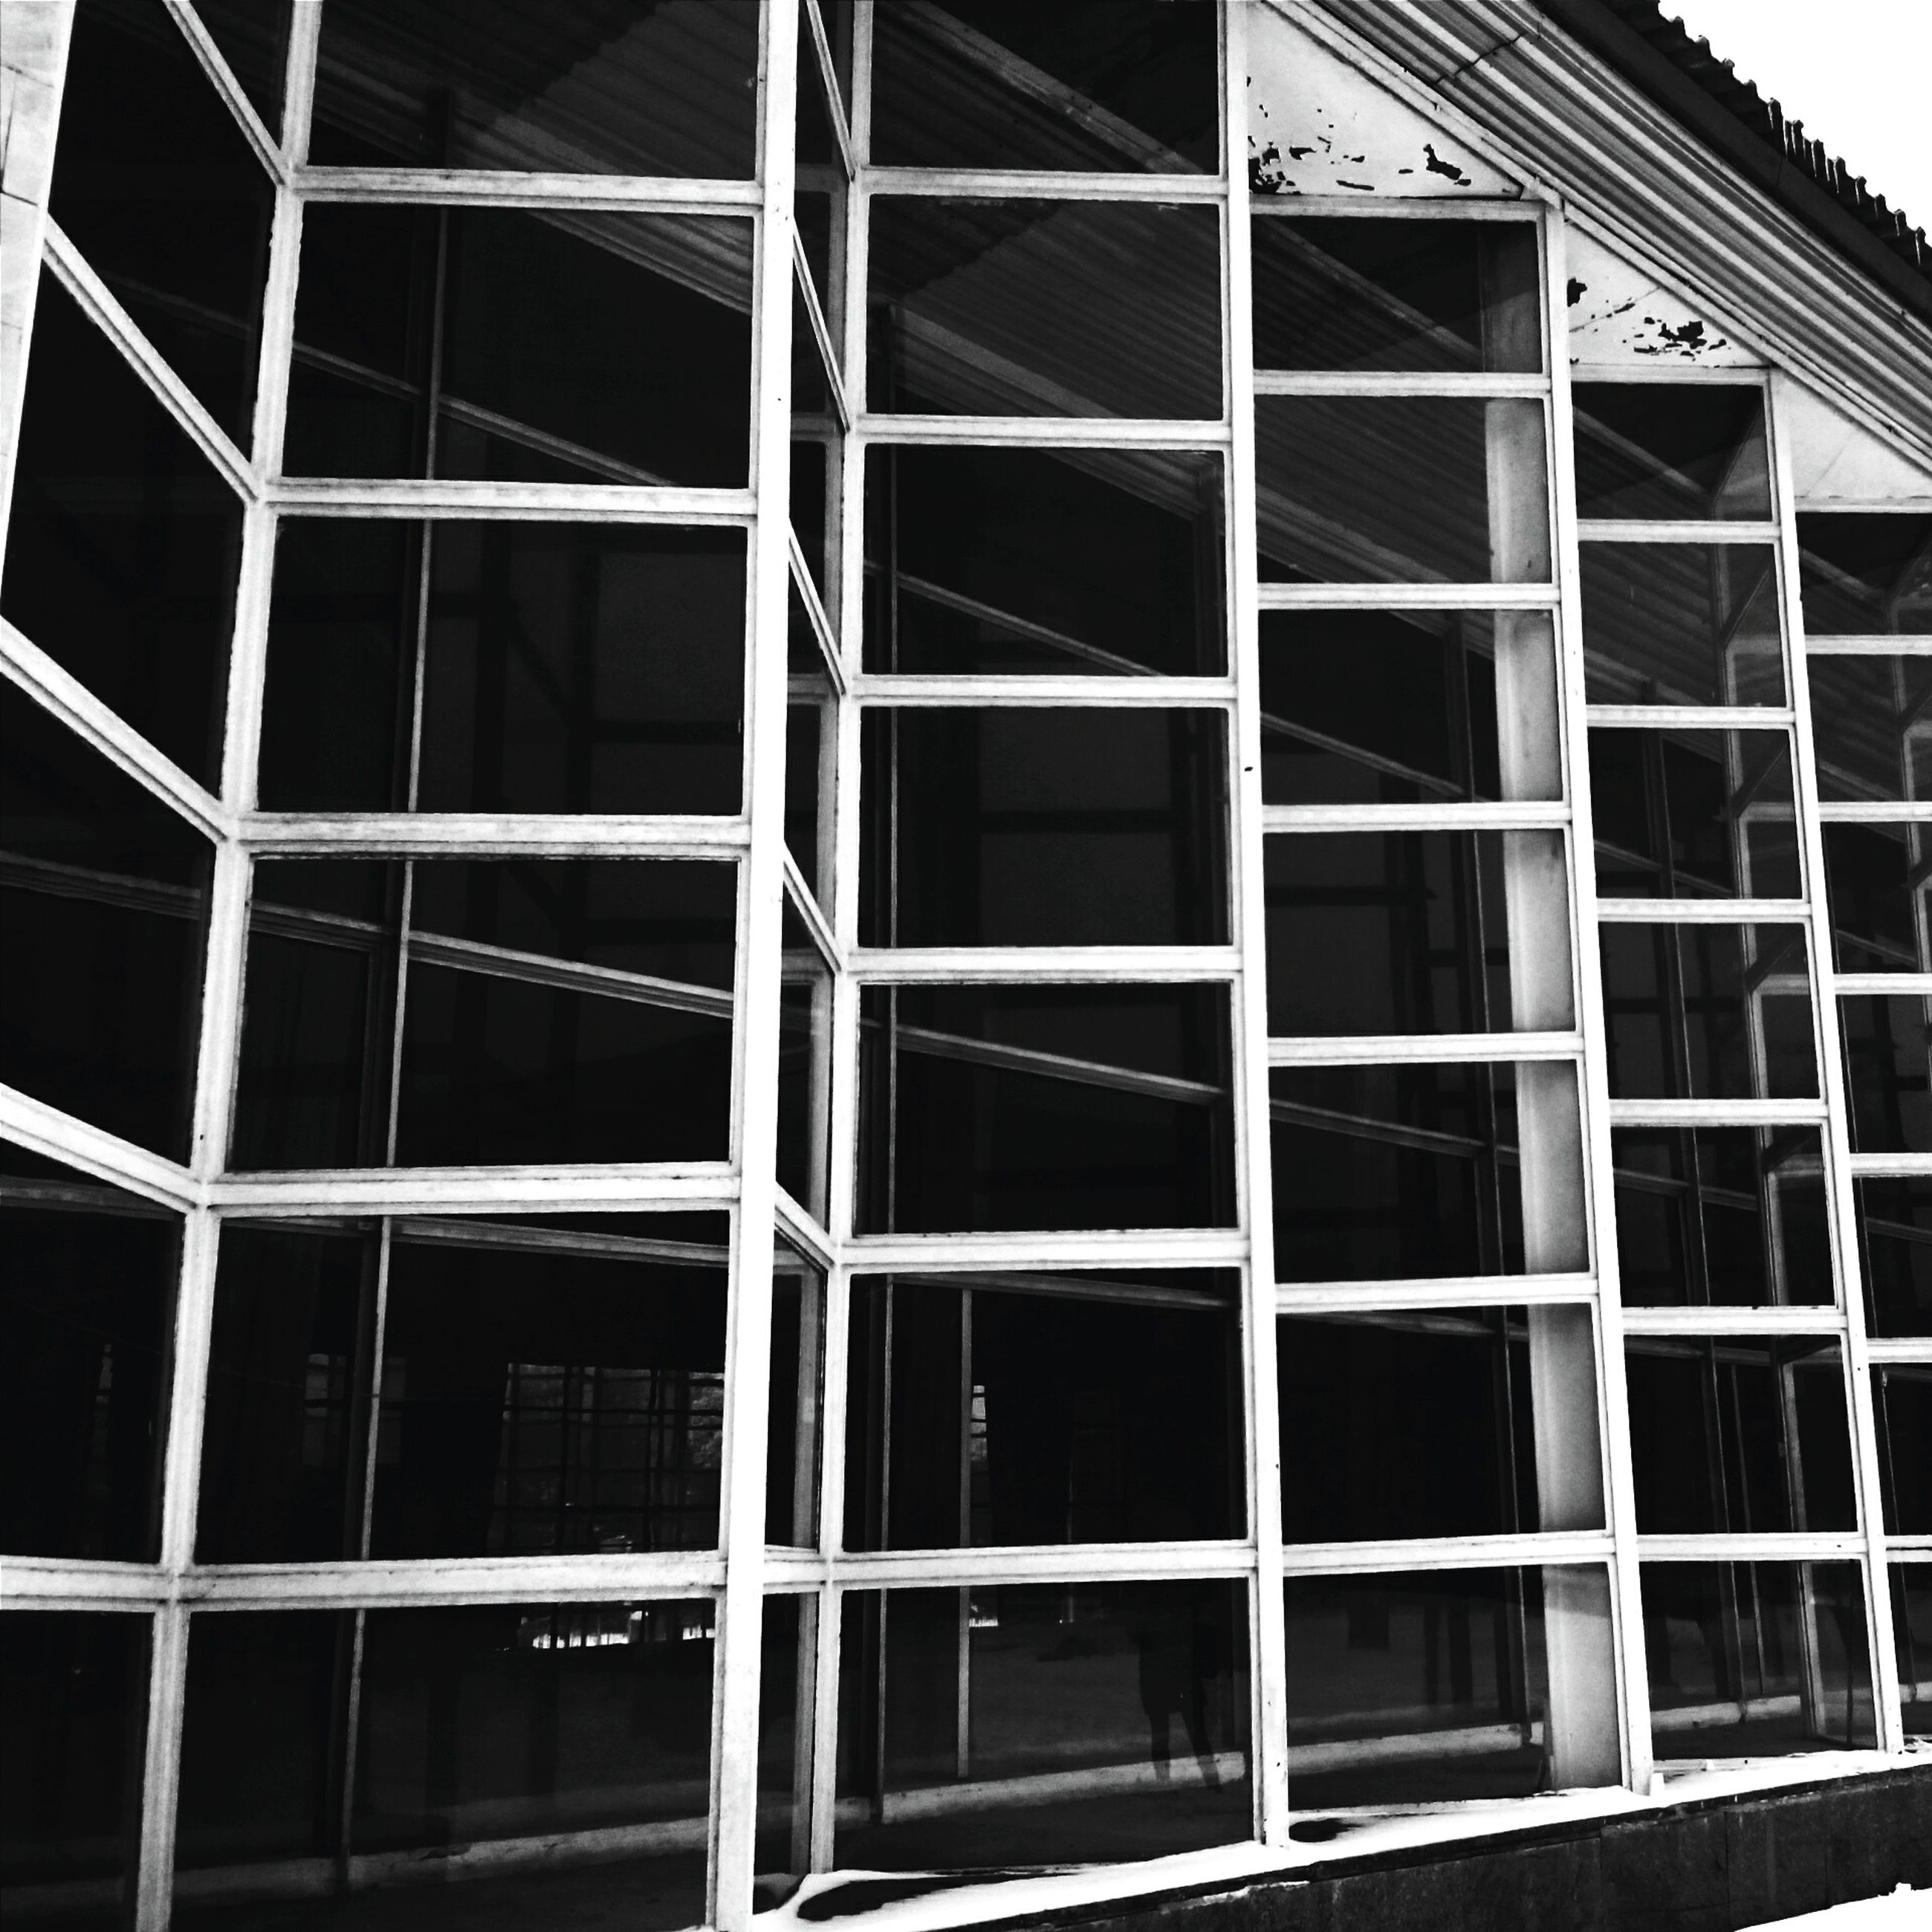 architecture, building exterior, window, built structure, glass - material, low angle view, building, residential building, reflection, residential structure, pattern, day, full frame, house, no people, city, modern, outdoors, repetition, facade